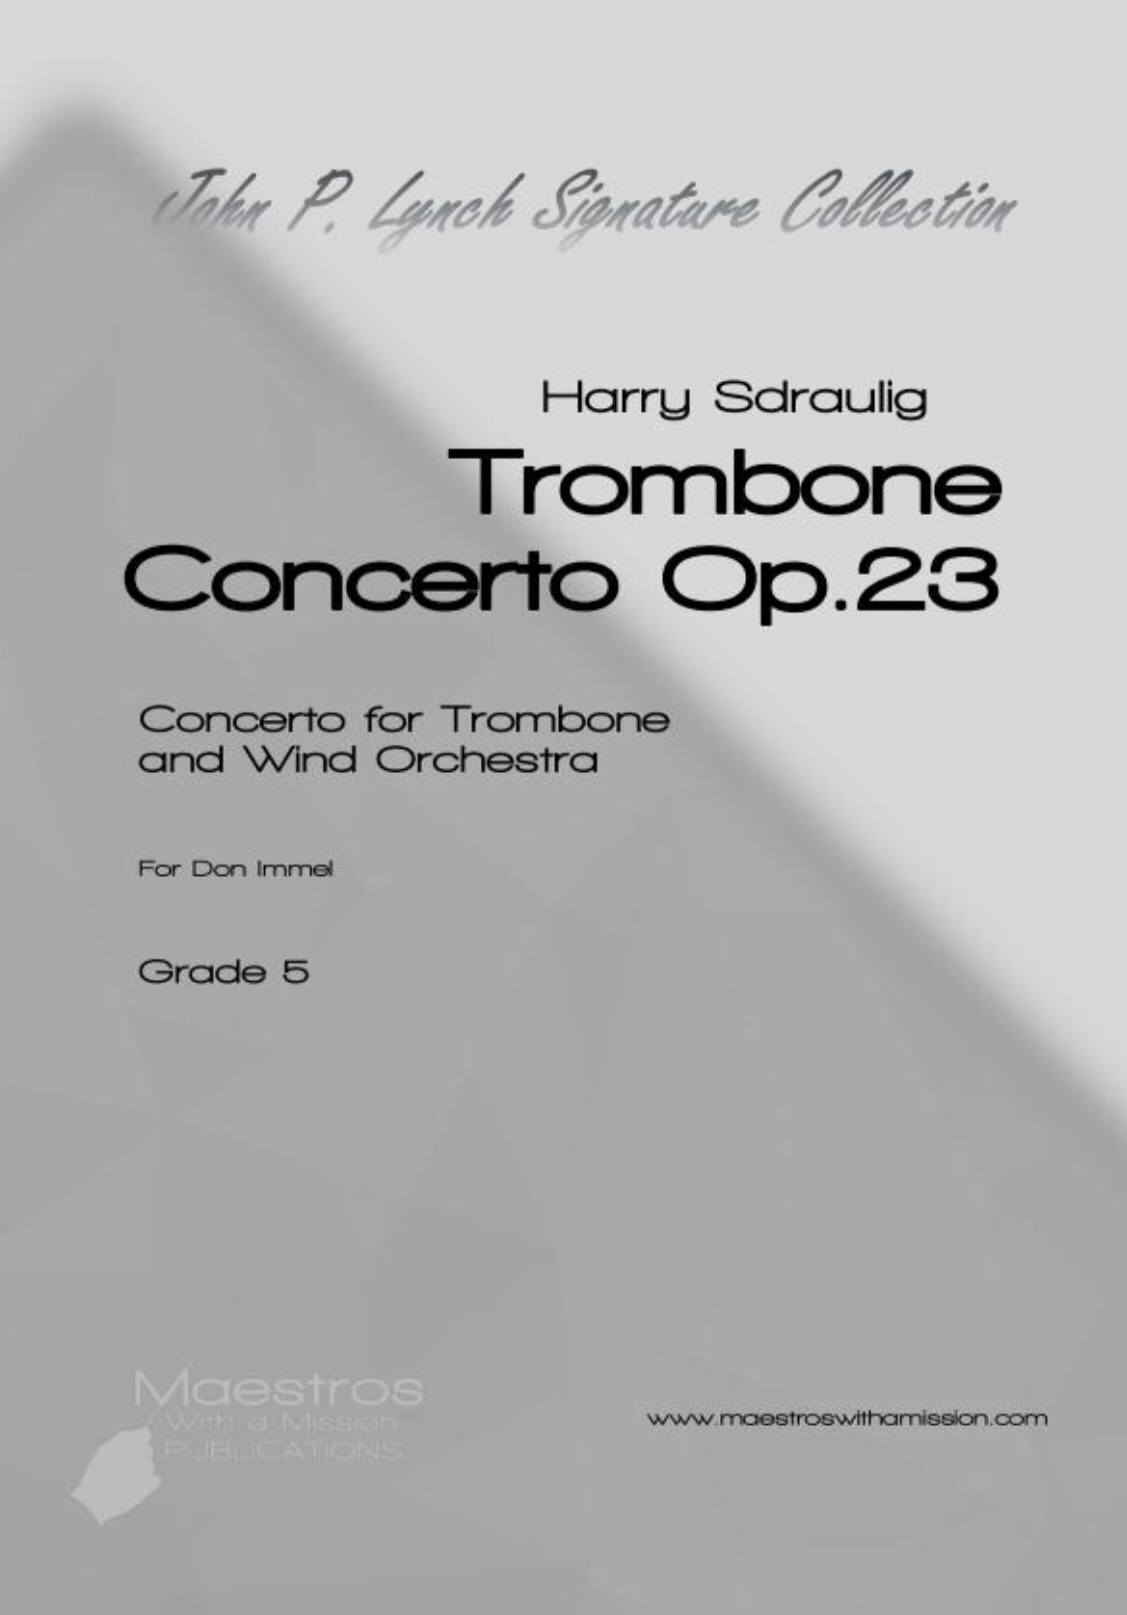 Trombone Concerto, Op. 23 by Harry Sdraulig